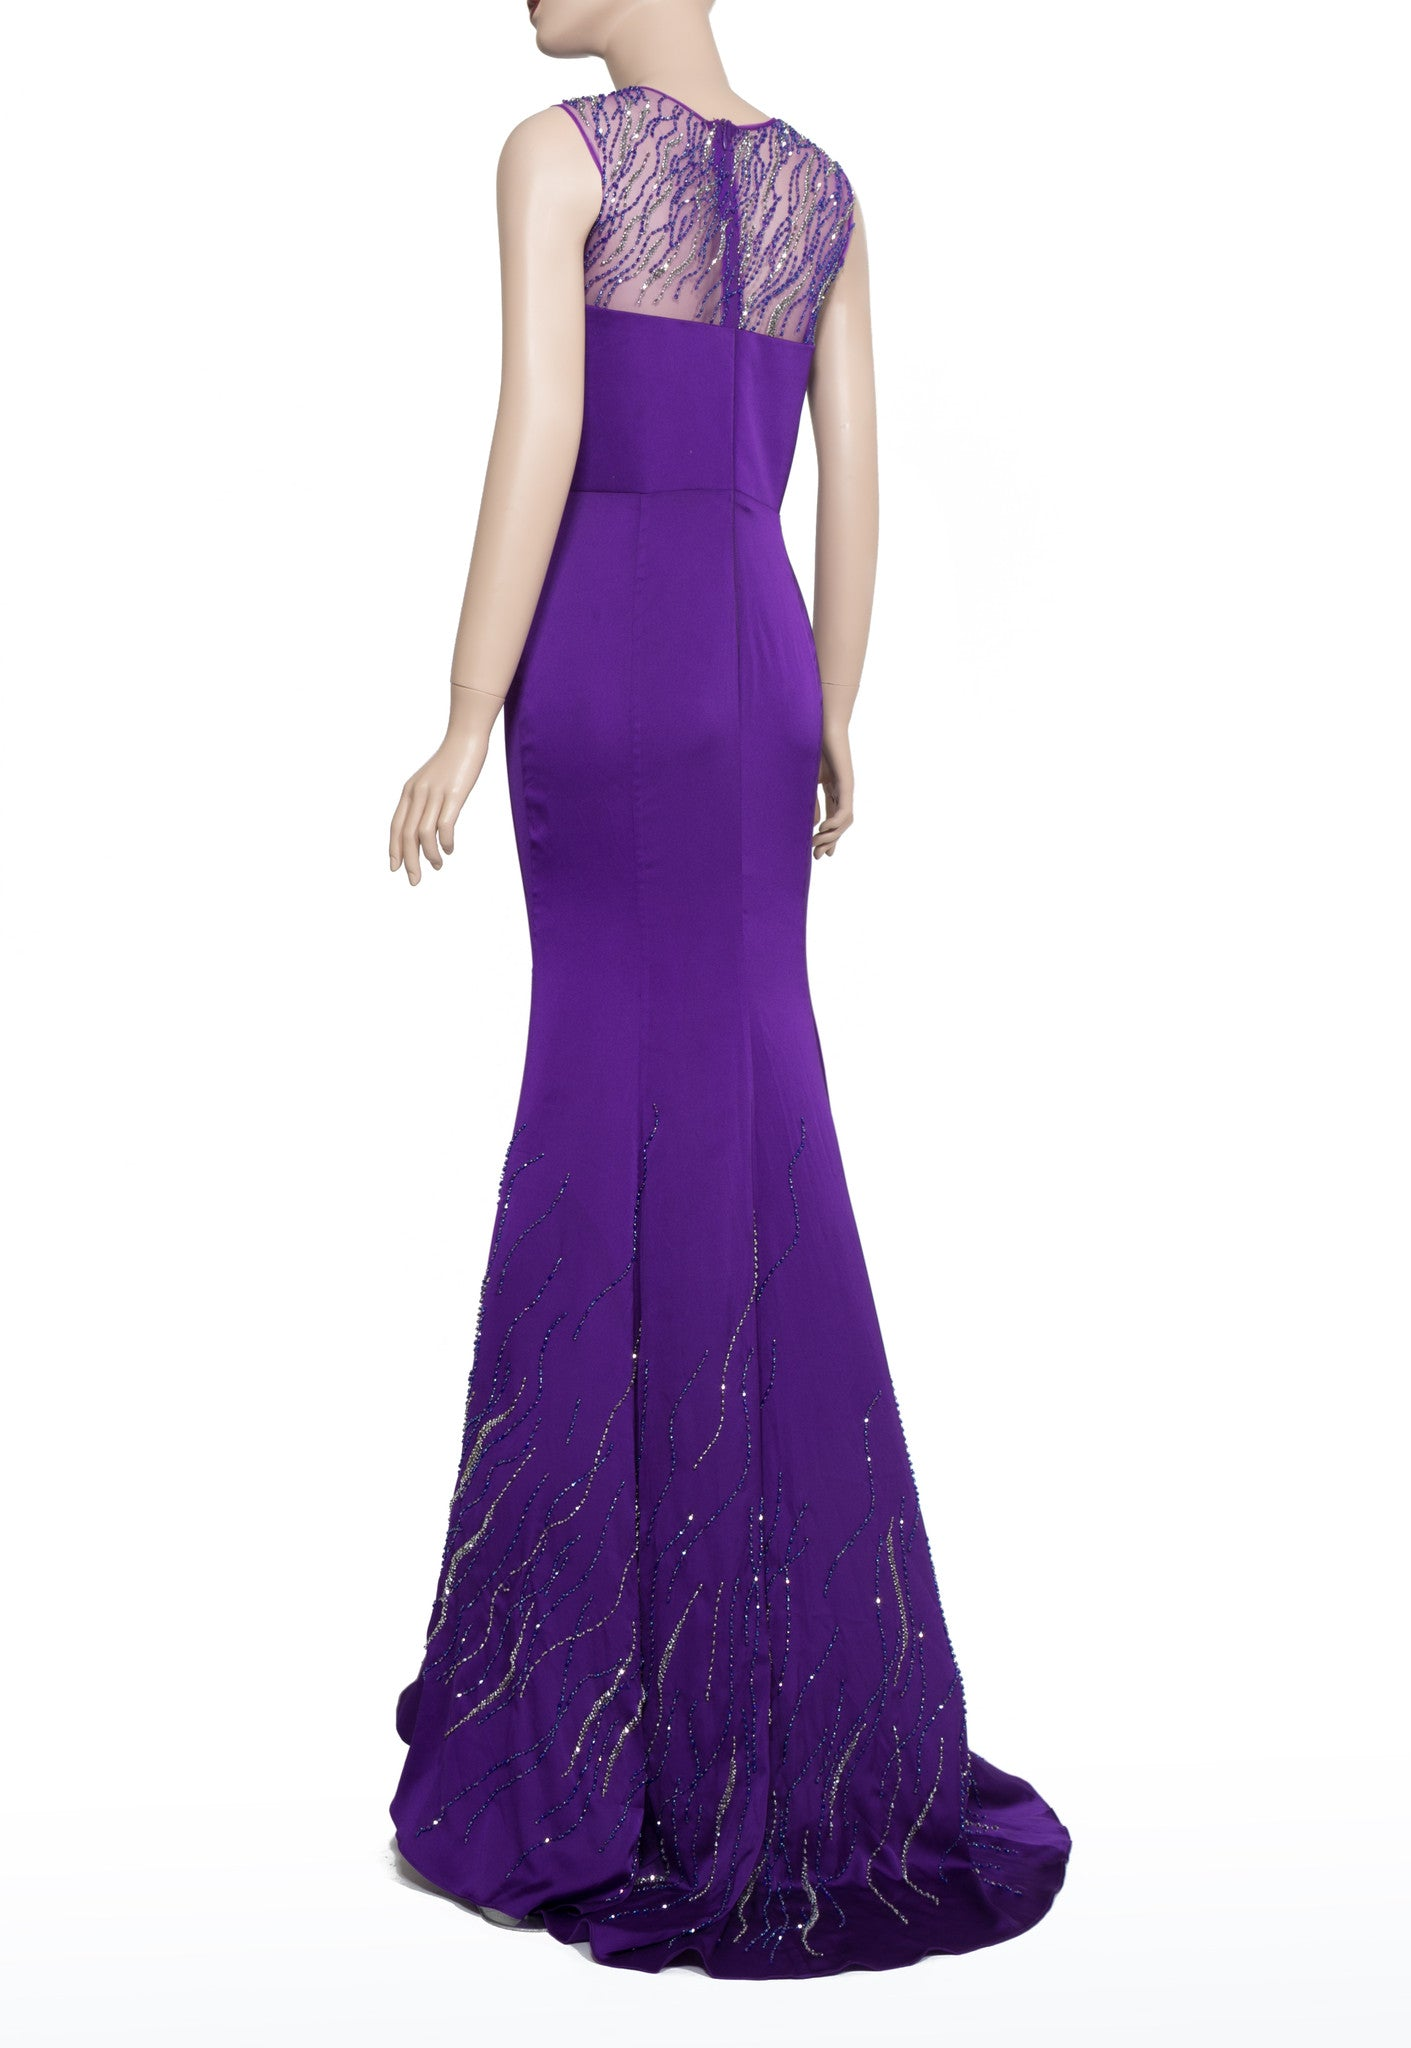 Purple Bead-embellished Dress (#Nicolle)